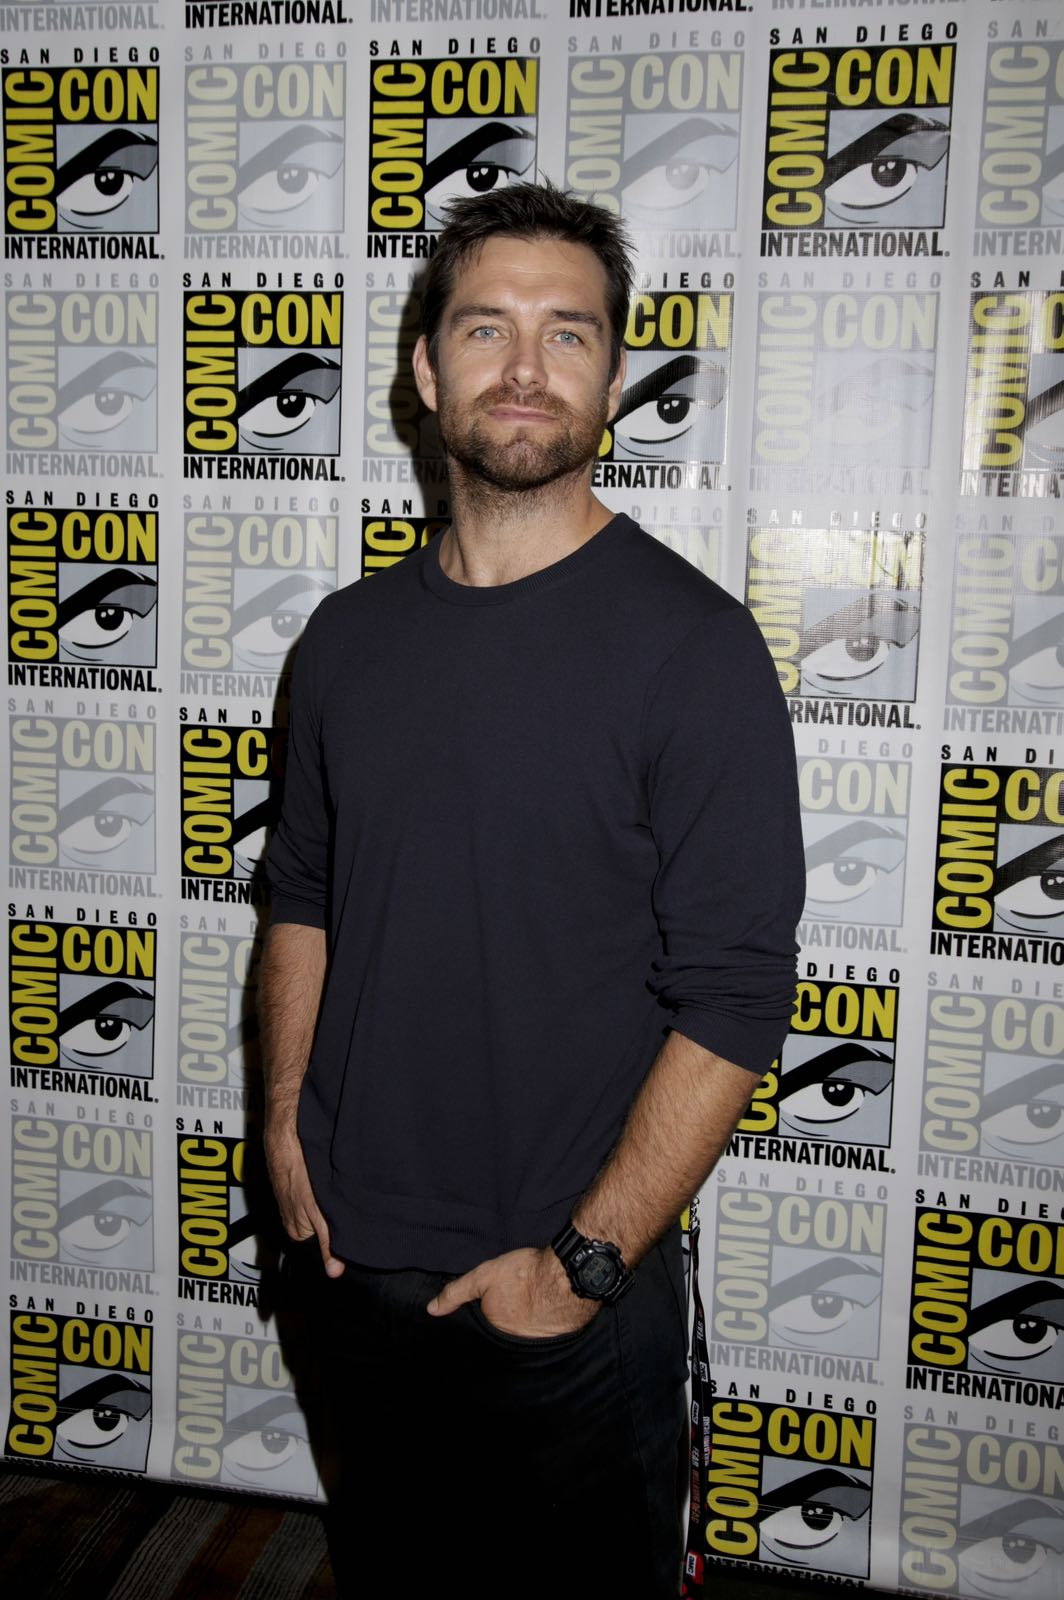 Antony Starr of American Gothic at COMIC-CON® 2016 in San Diego, California. Photo: Francis Specker/CBS ©2016 CBS Broadcasting, Inc. All Rights Reserved